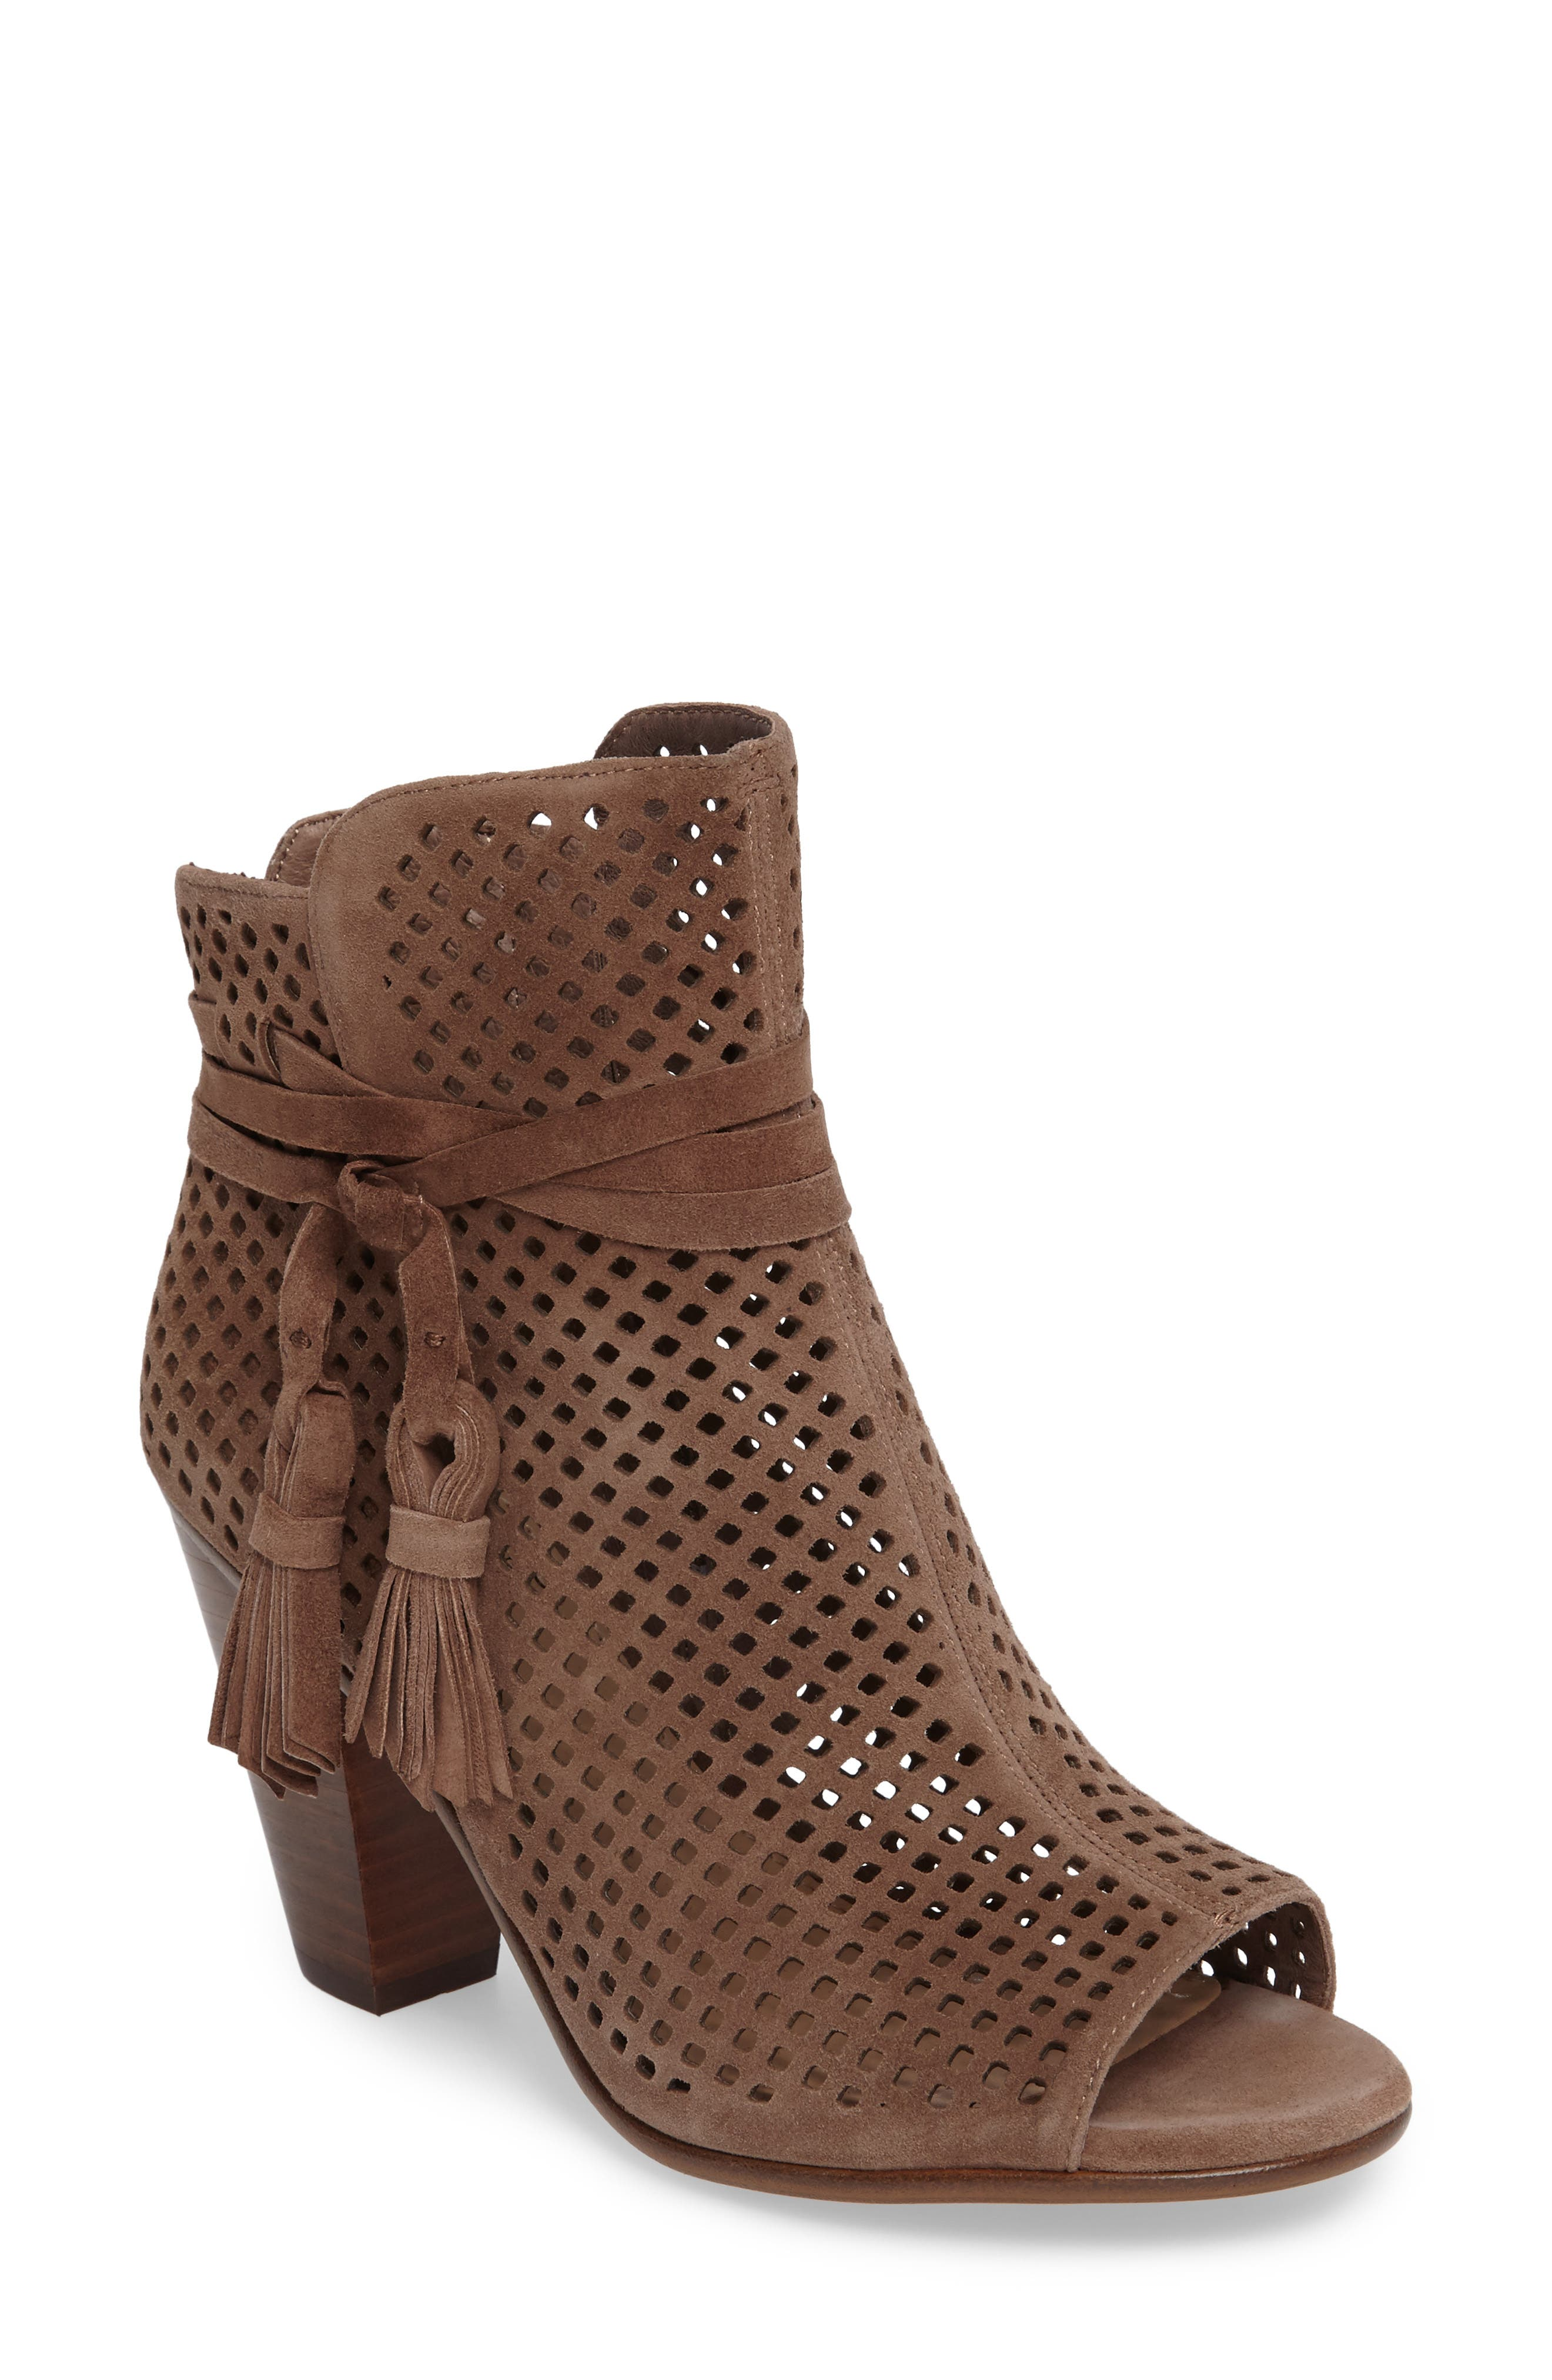 Alternate Image 1 Selected - Vince Camuto Kamey Perforated Open Toe Bootie (Women)